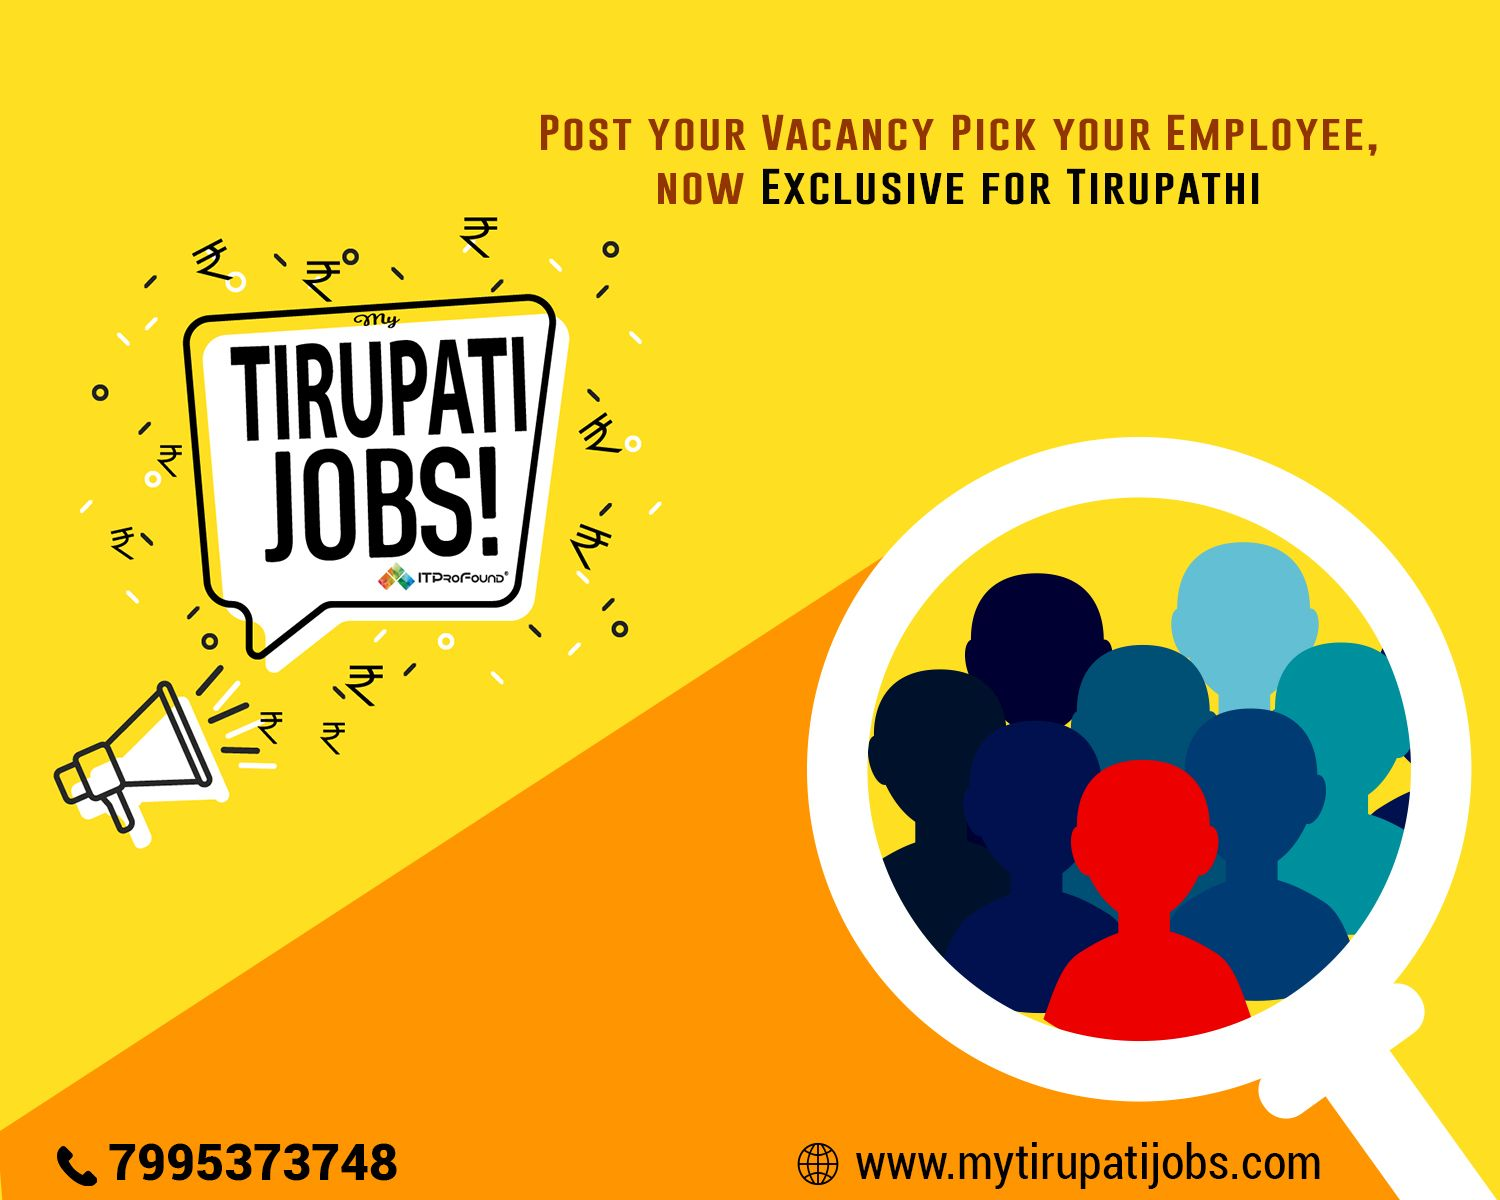 Need A Talent Pick Your Choice From Mytirupatijobs Com For The Employers Of Tirupati Tirupatijobs Tirupati Mytirupatijobs In 2020 With Images Tirupati Job Job S